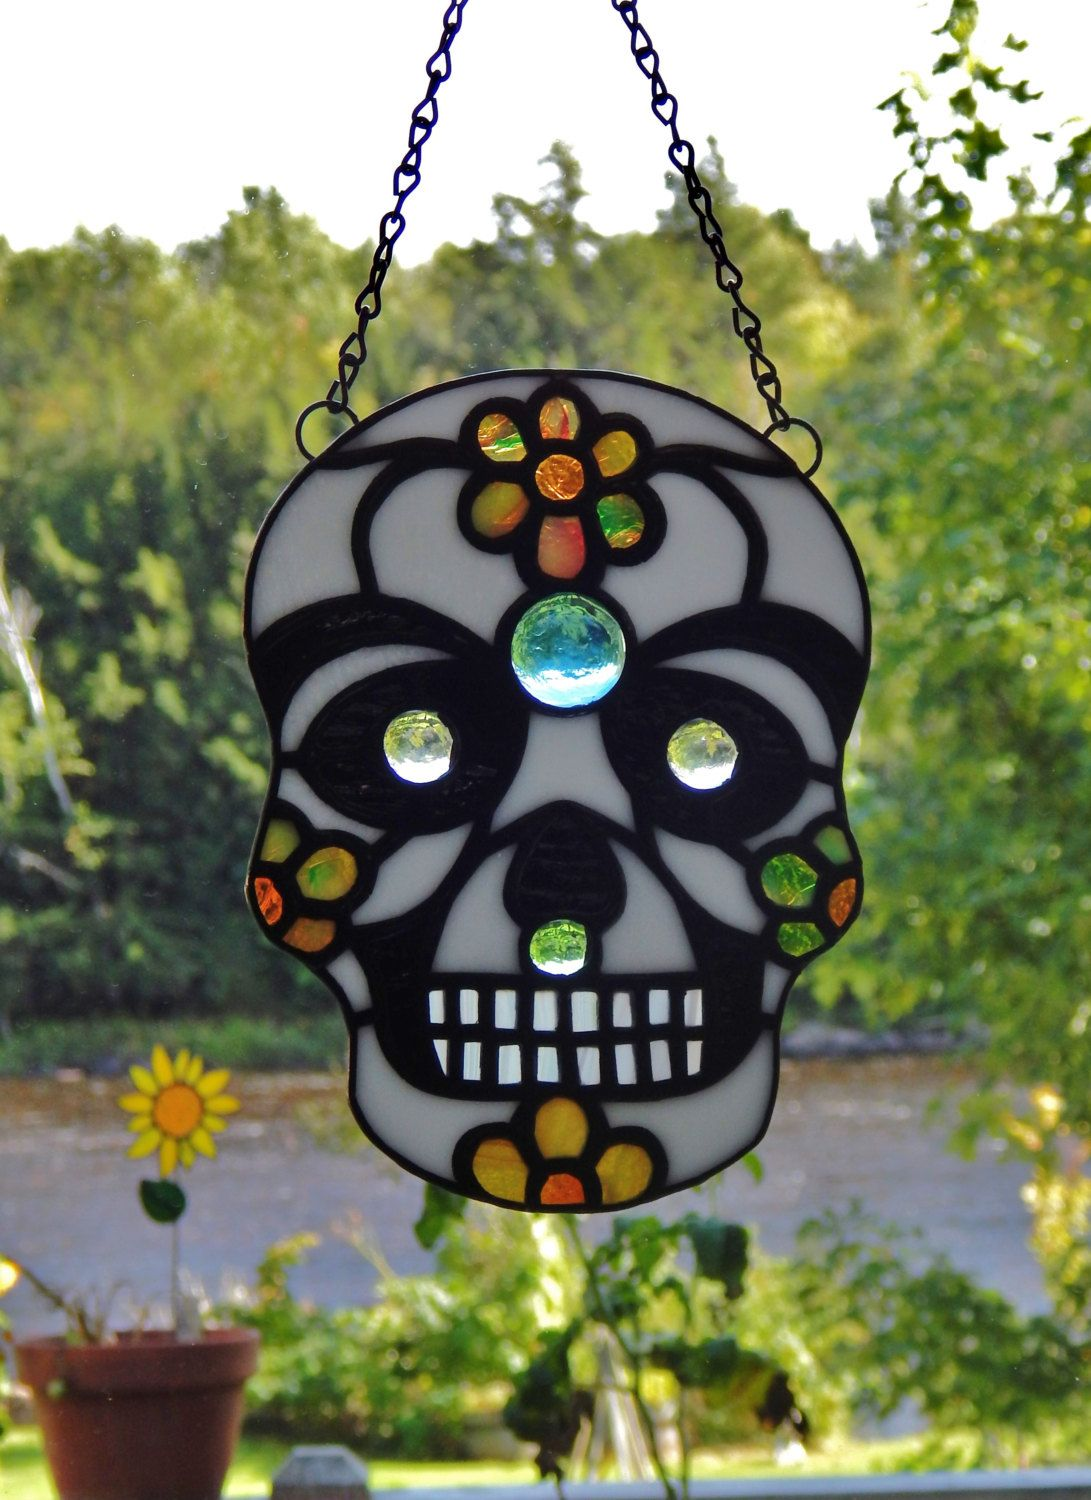 Stained glass day of the dead sugar skull by redfordglassstudio stained glass day of the dead skull suncatcher by redfordglassstudio on etsy dailygadgetfo Choice Image